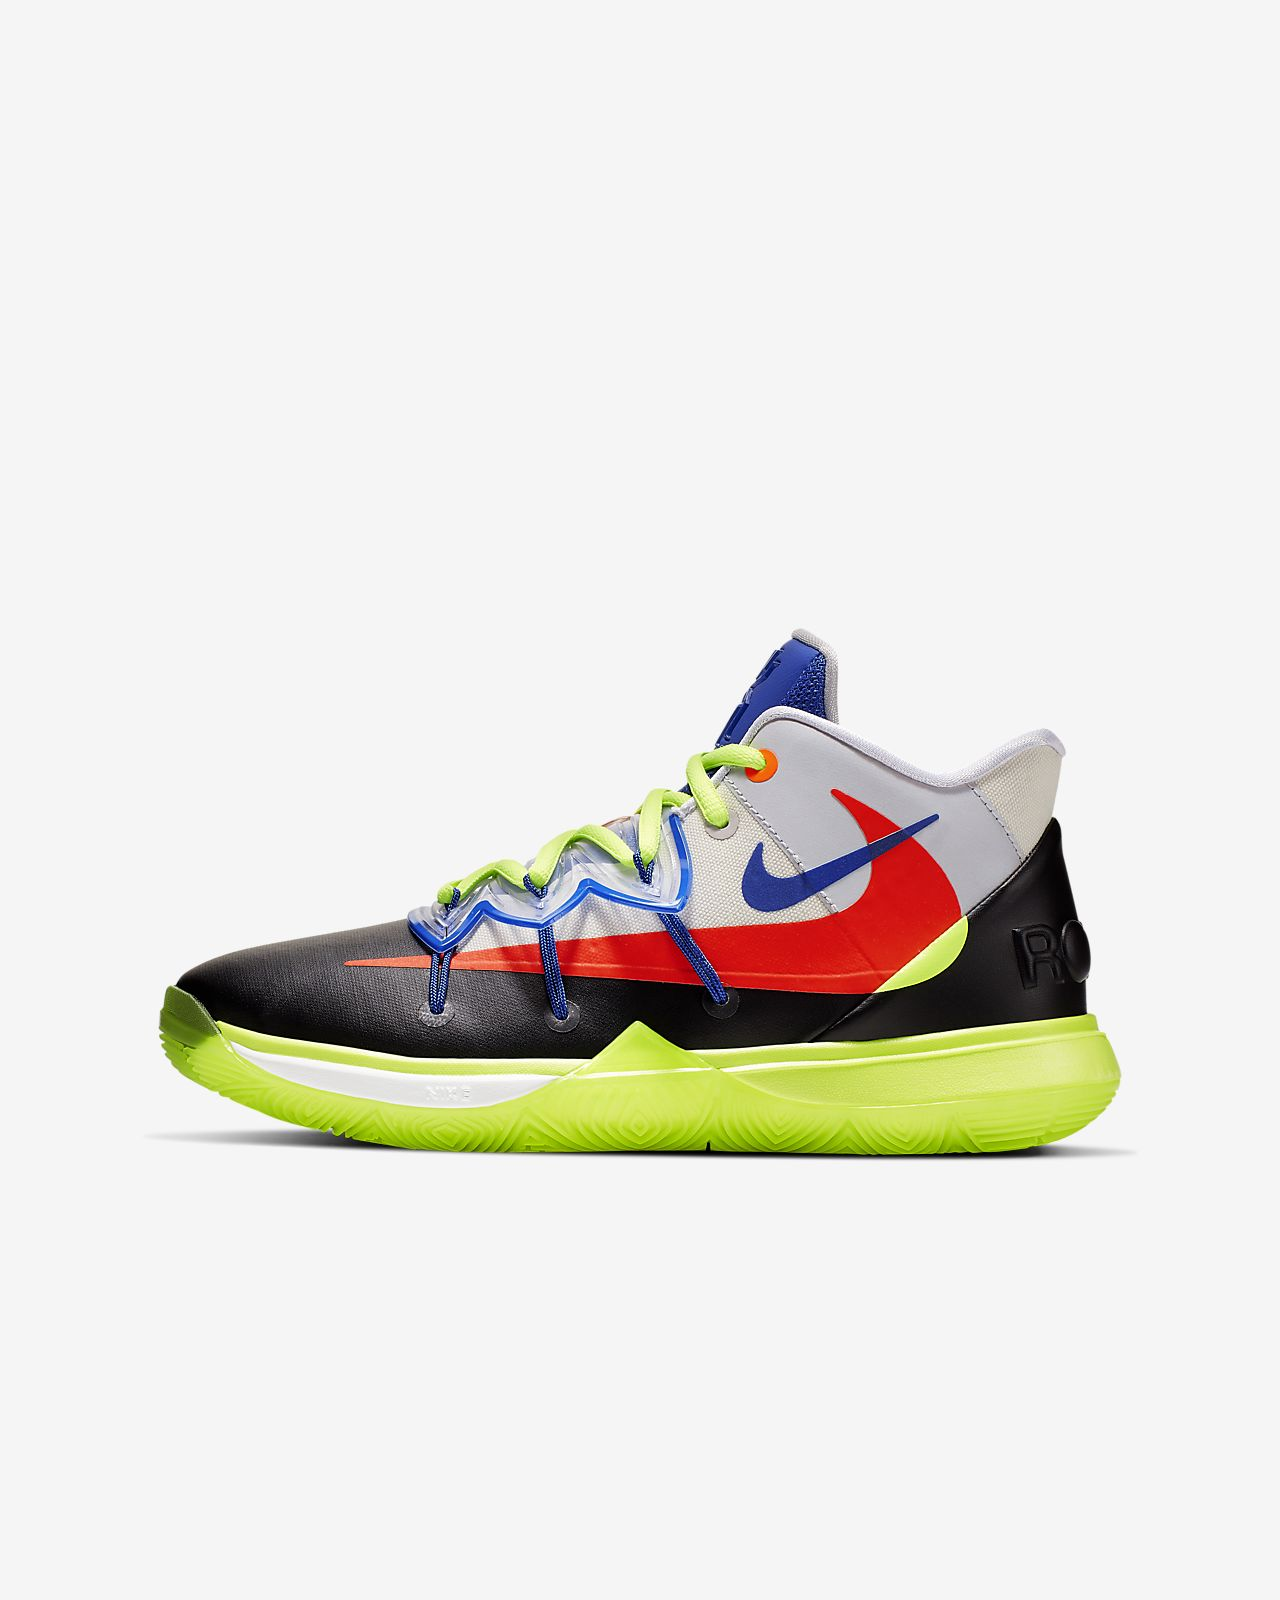 49ac7a724ee Kyrie 5 x ROKIT All Star Big Kids  Shoe. Nike.com